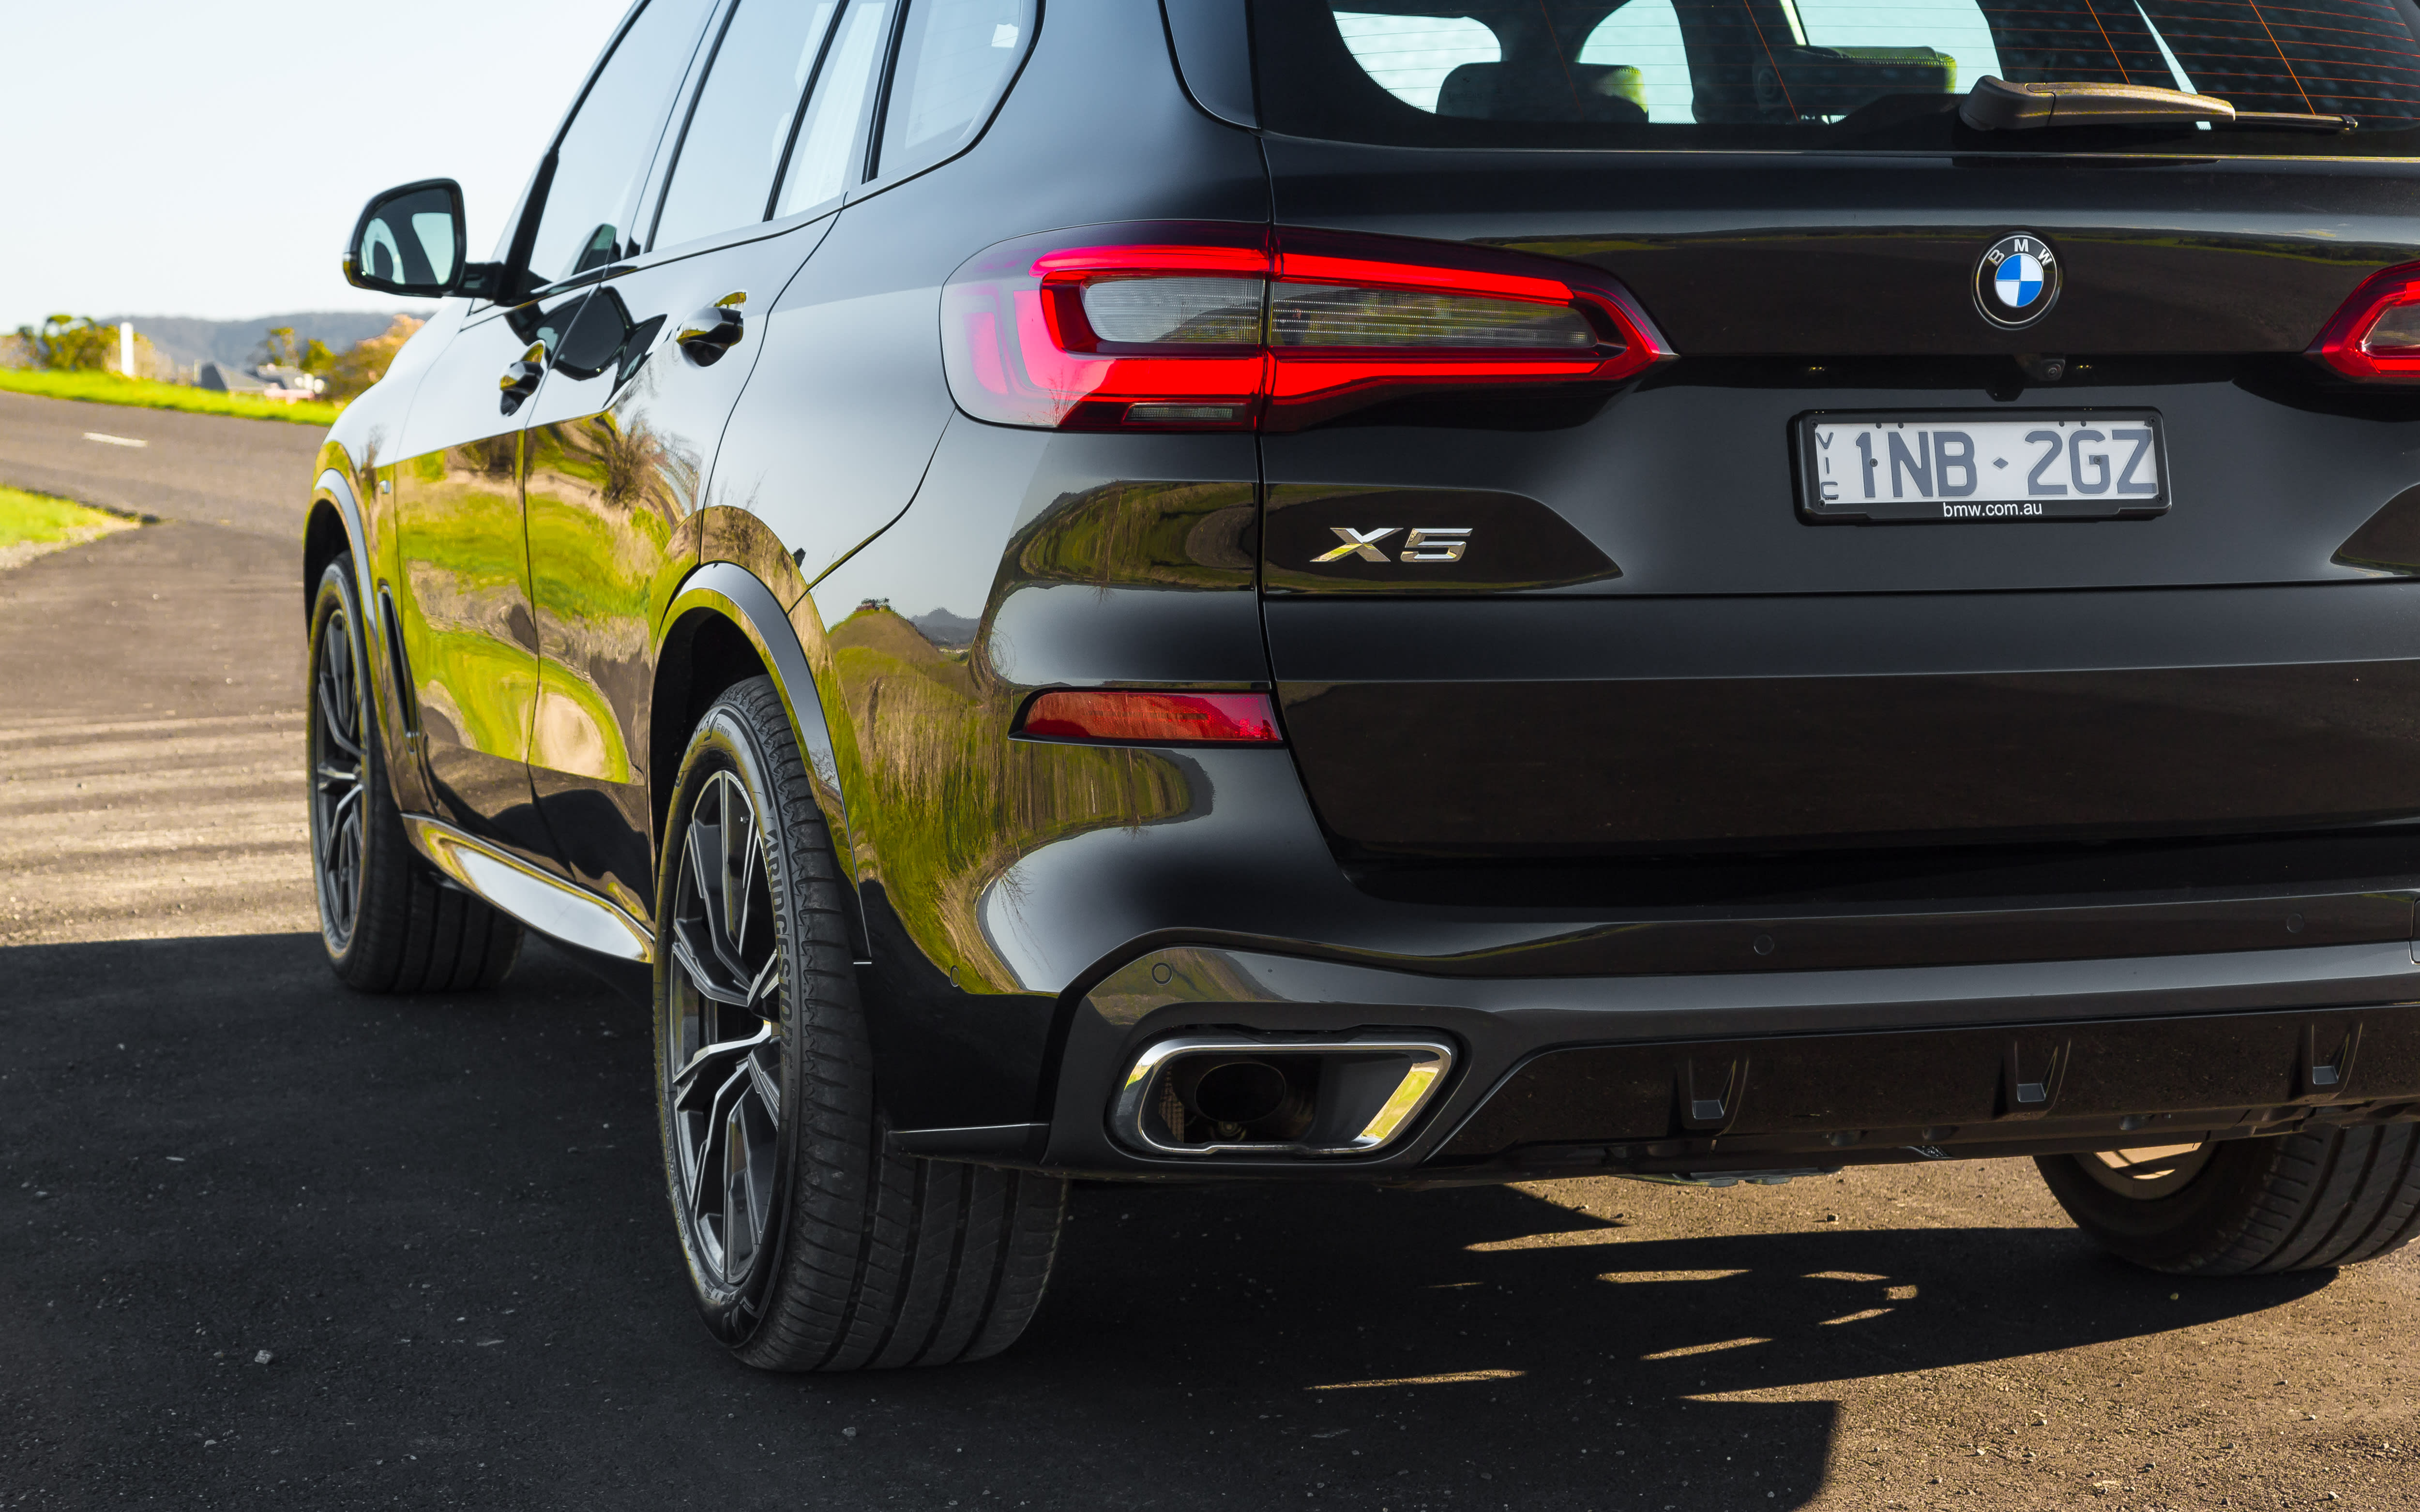 2020 Bmw X5 Australia S New Variants Confirmed For Q4 Caradvice